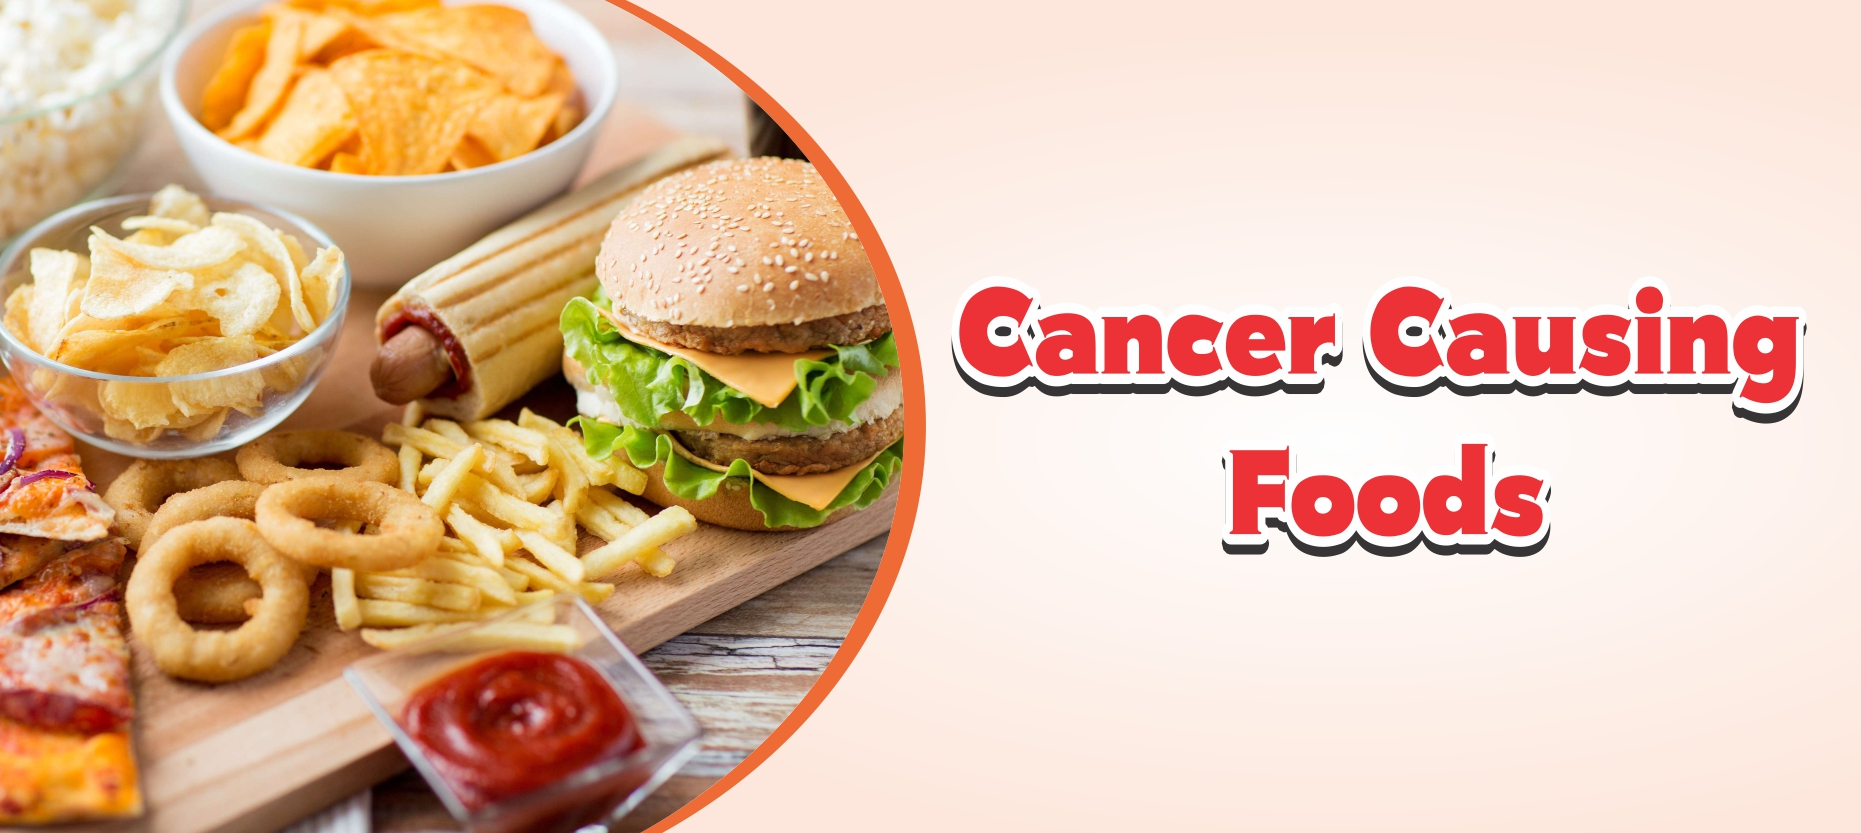 Top 7 Cancer Causing Foods to Avoid